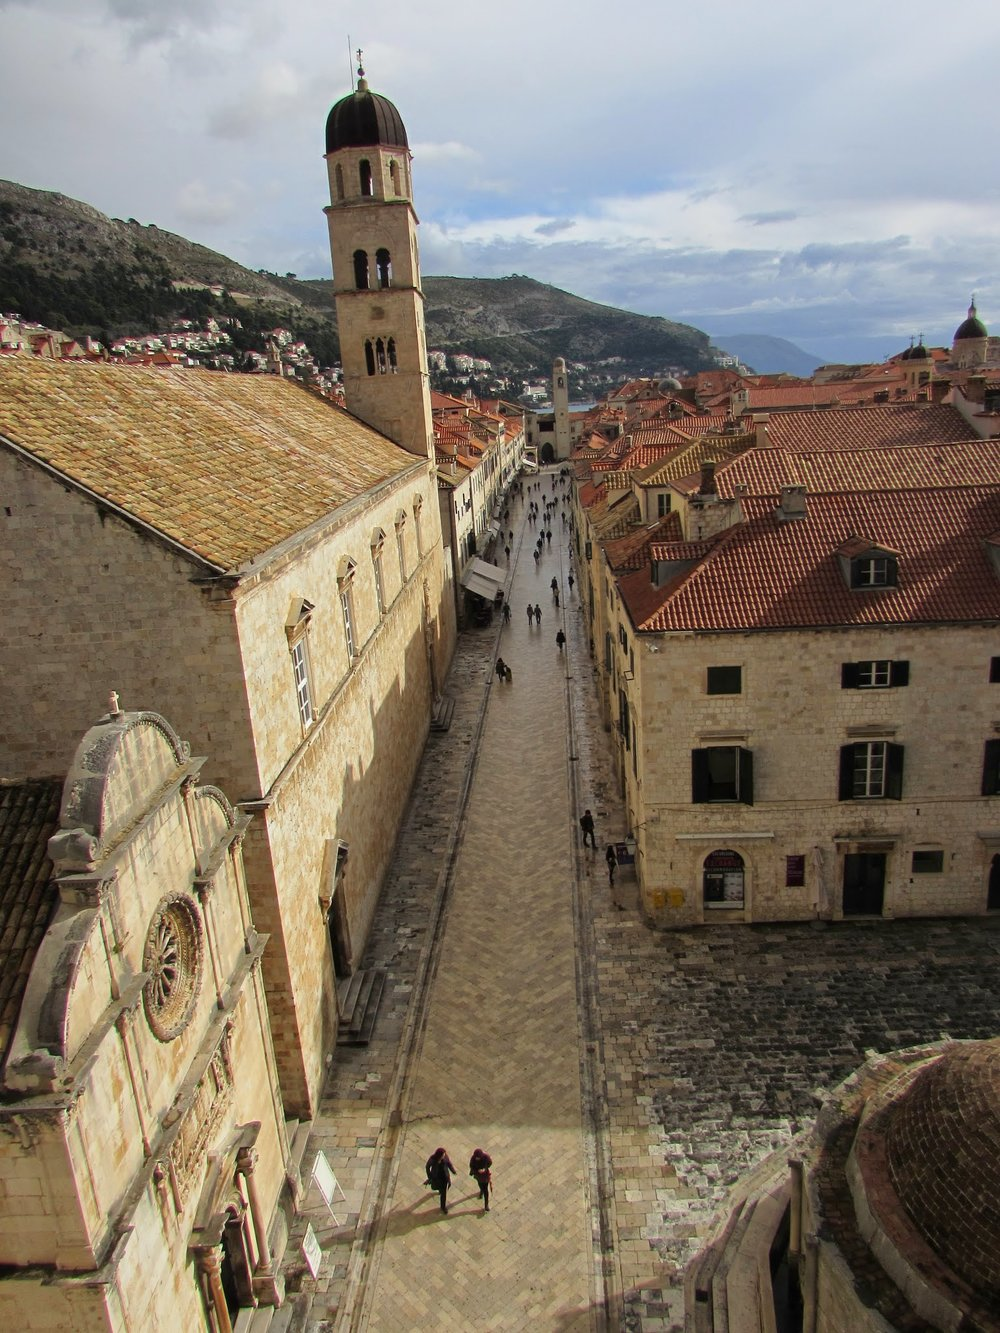 You can walk the walls of the city, a very touristy thing to do. But definitely worth it for views like this one, of Dubrovnik's main street Stradun. Also, we barely encountered another person since we were there in the very off-season of late November.